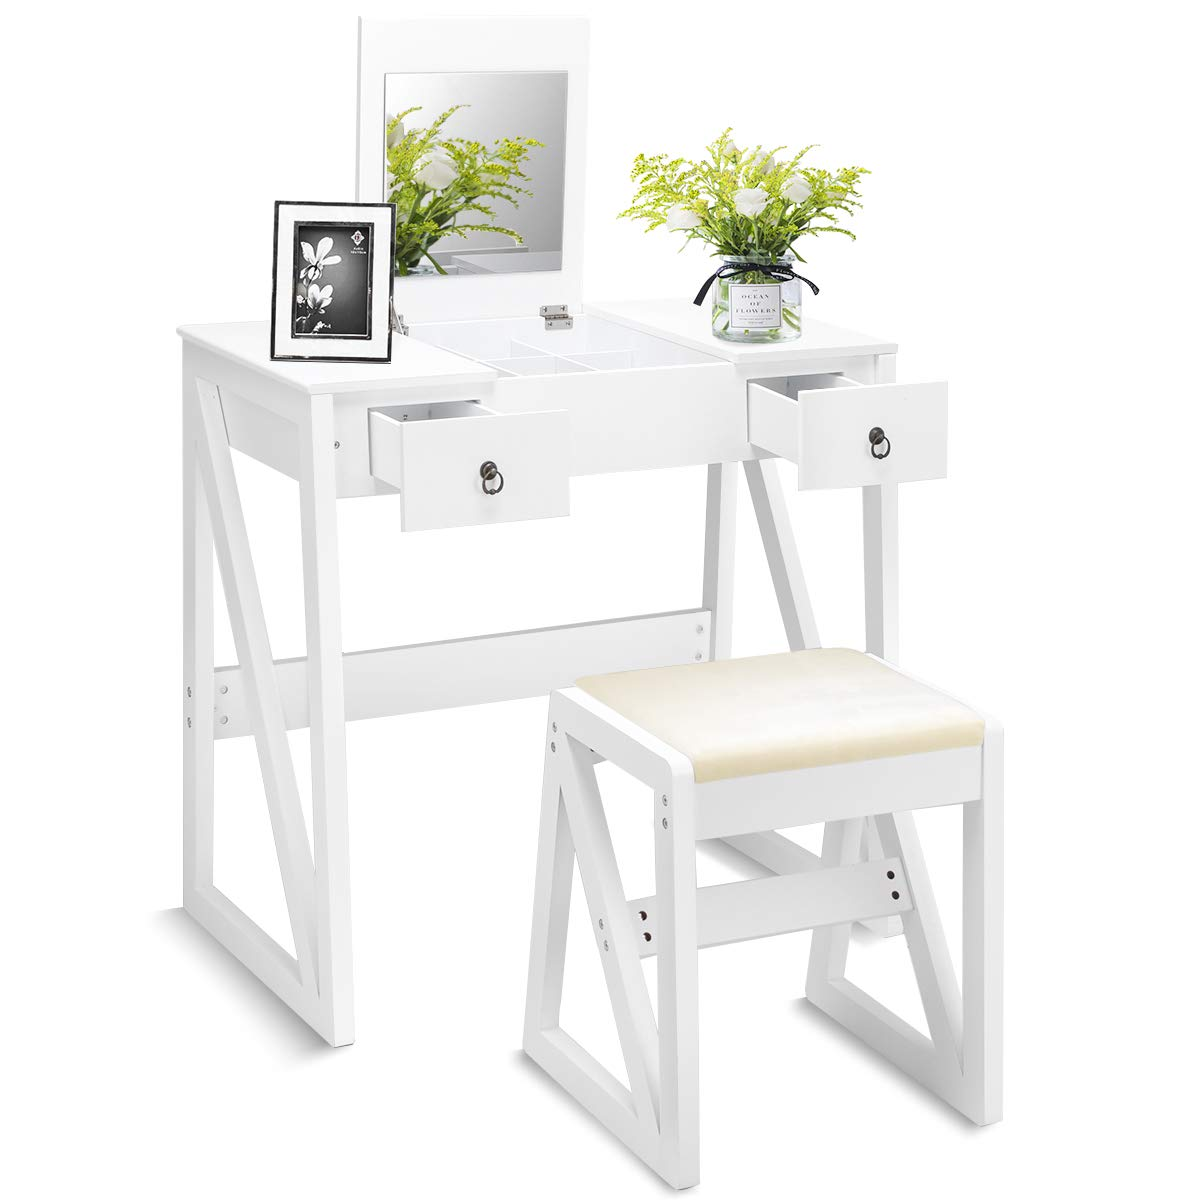 Dressing Table Set with Stool and Mirror, Flip Top Mirrored for Makeup 9 Mid Organizers Dual, Contemporary Vanity Tables  w/ 2 Drawers